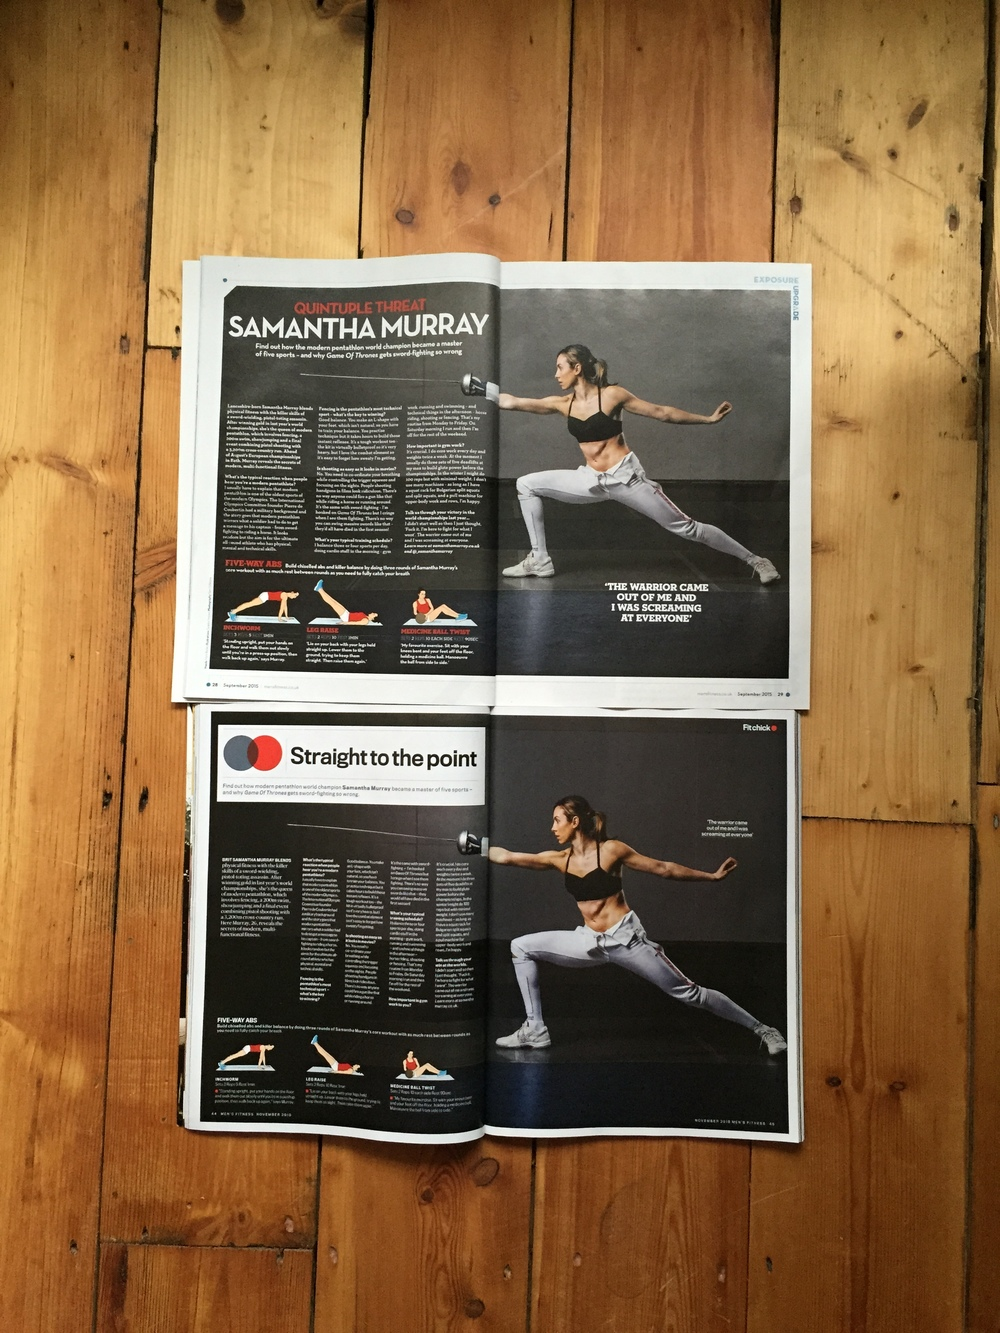 Samantha Murray (Olympic Silver Medallist Modern Pentathlon) for Men's Fitness UK & Australia, Sept/Oct 2015